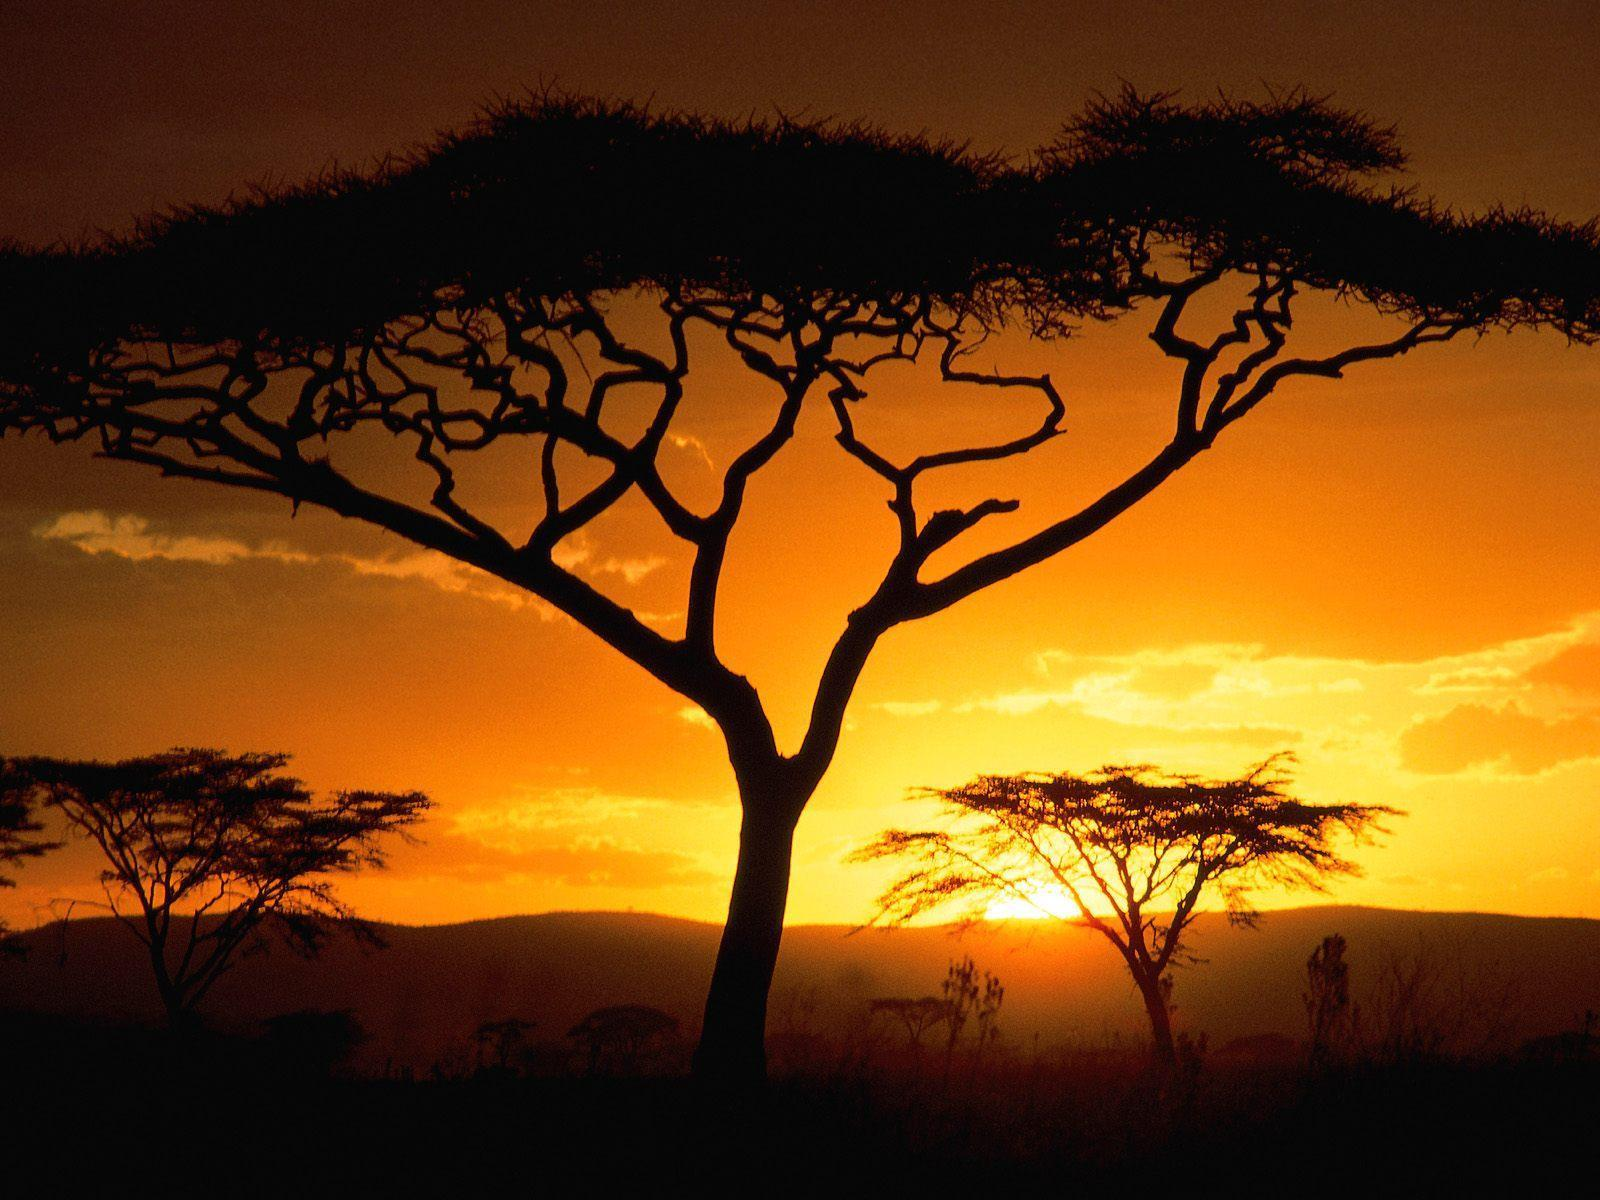 african scenery wallpaper for computer - photo #12